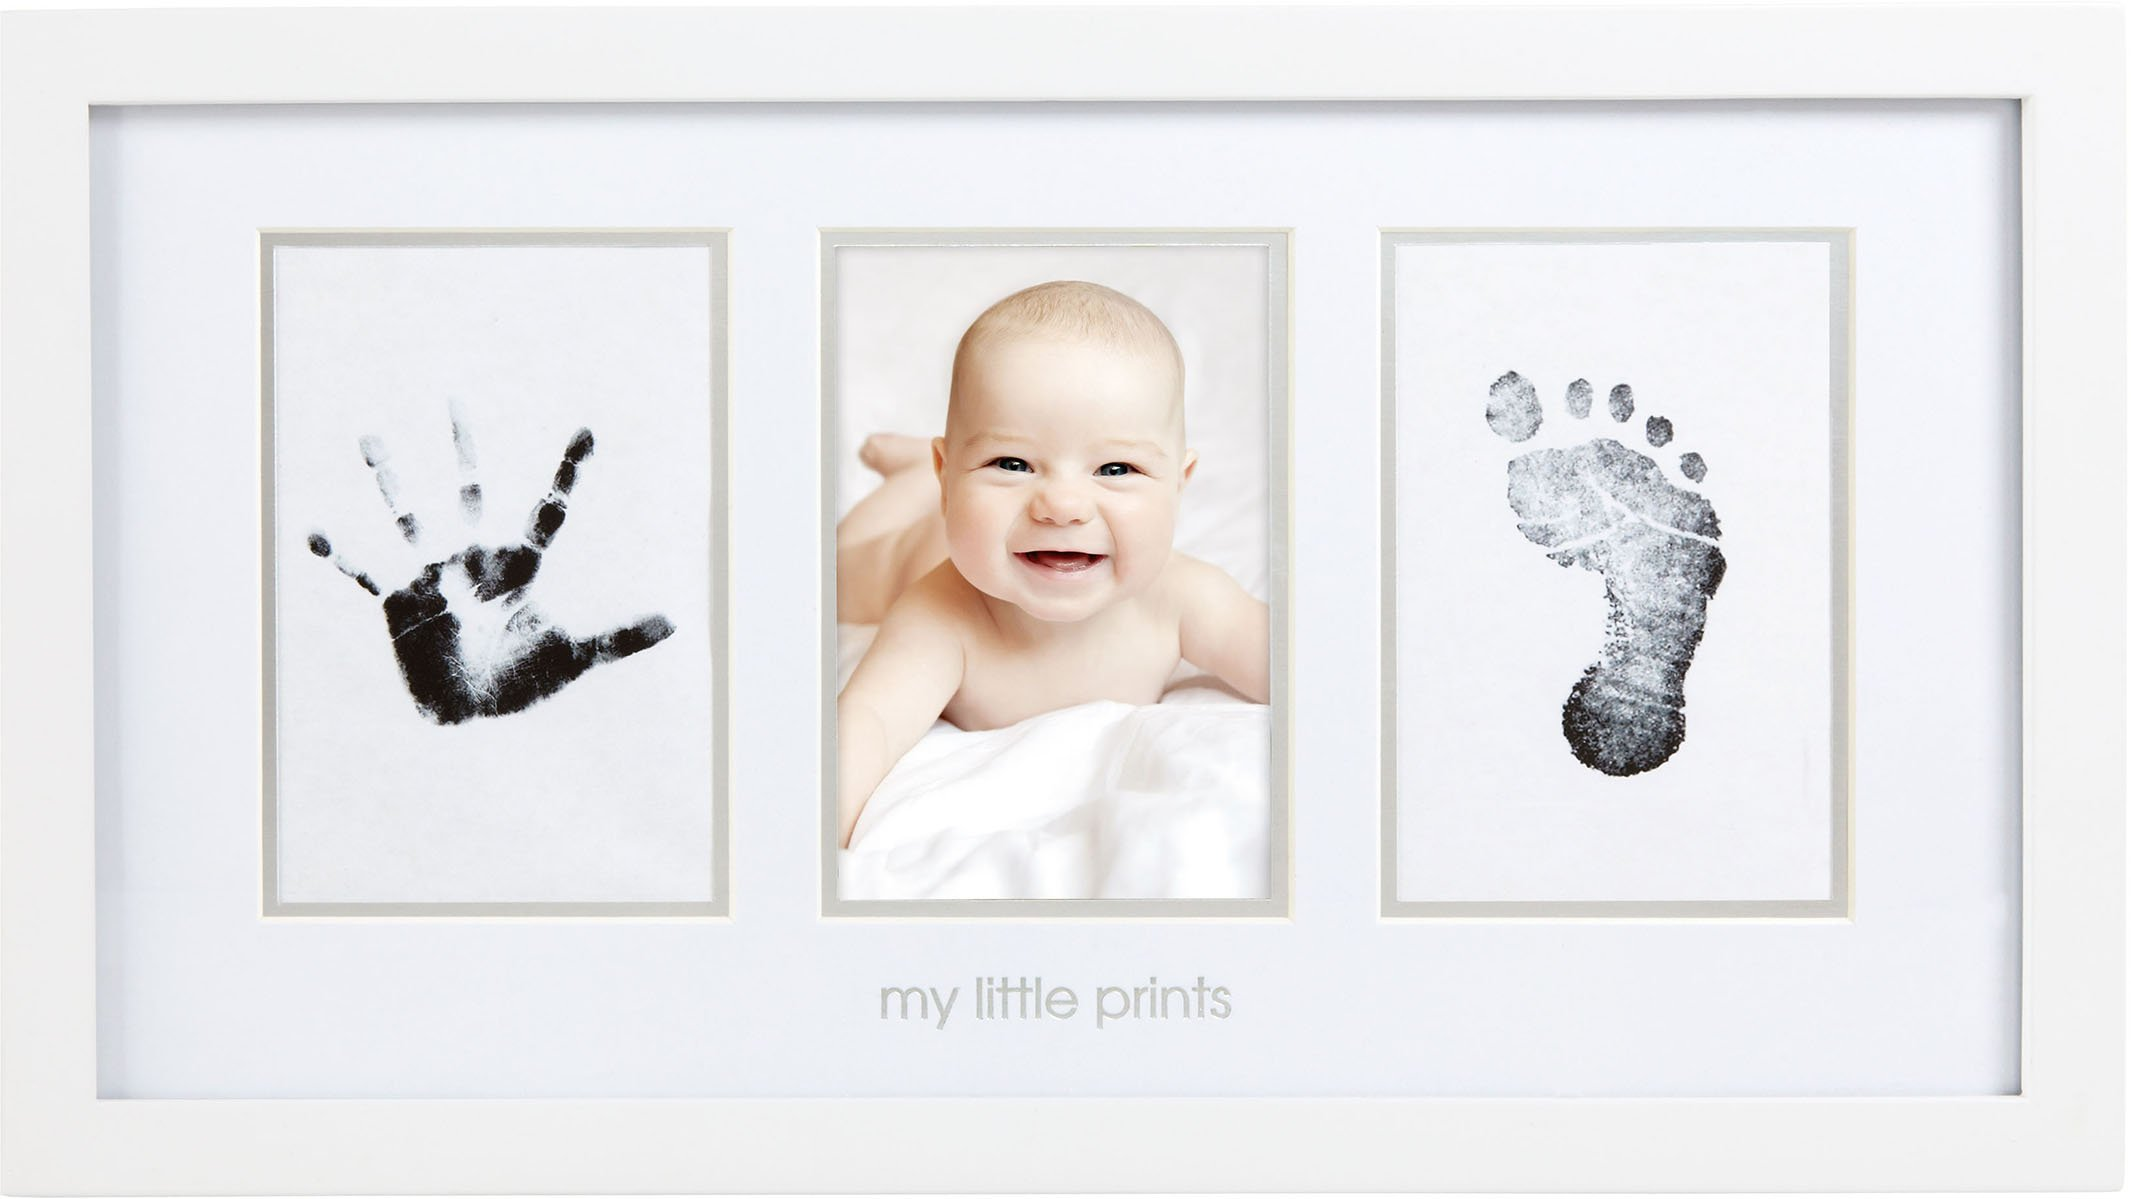 Pearhead Babyprints Newborn Baby Handprint and Footprint Photo Frame Kit, White